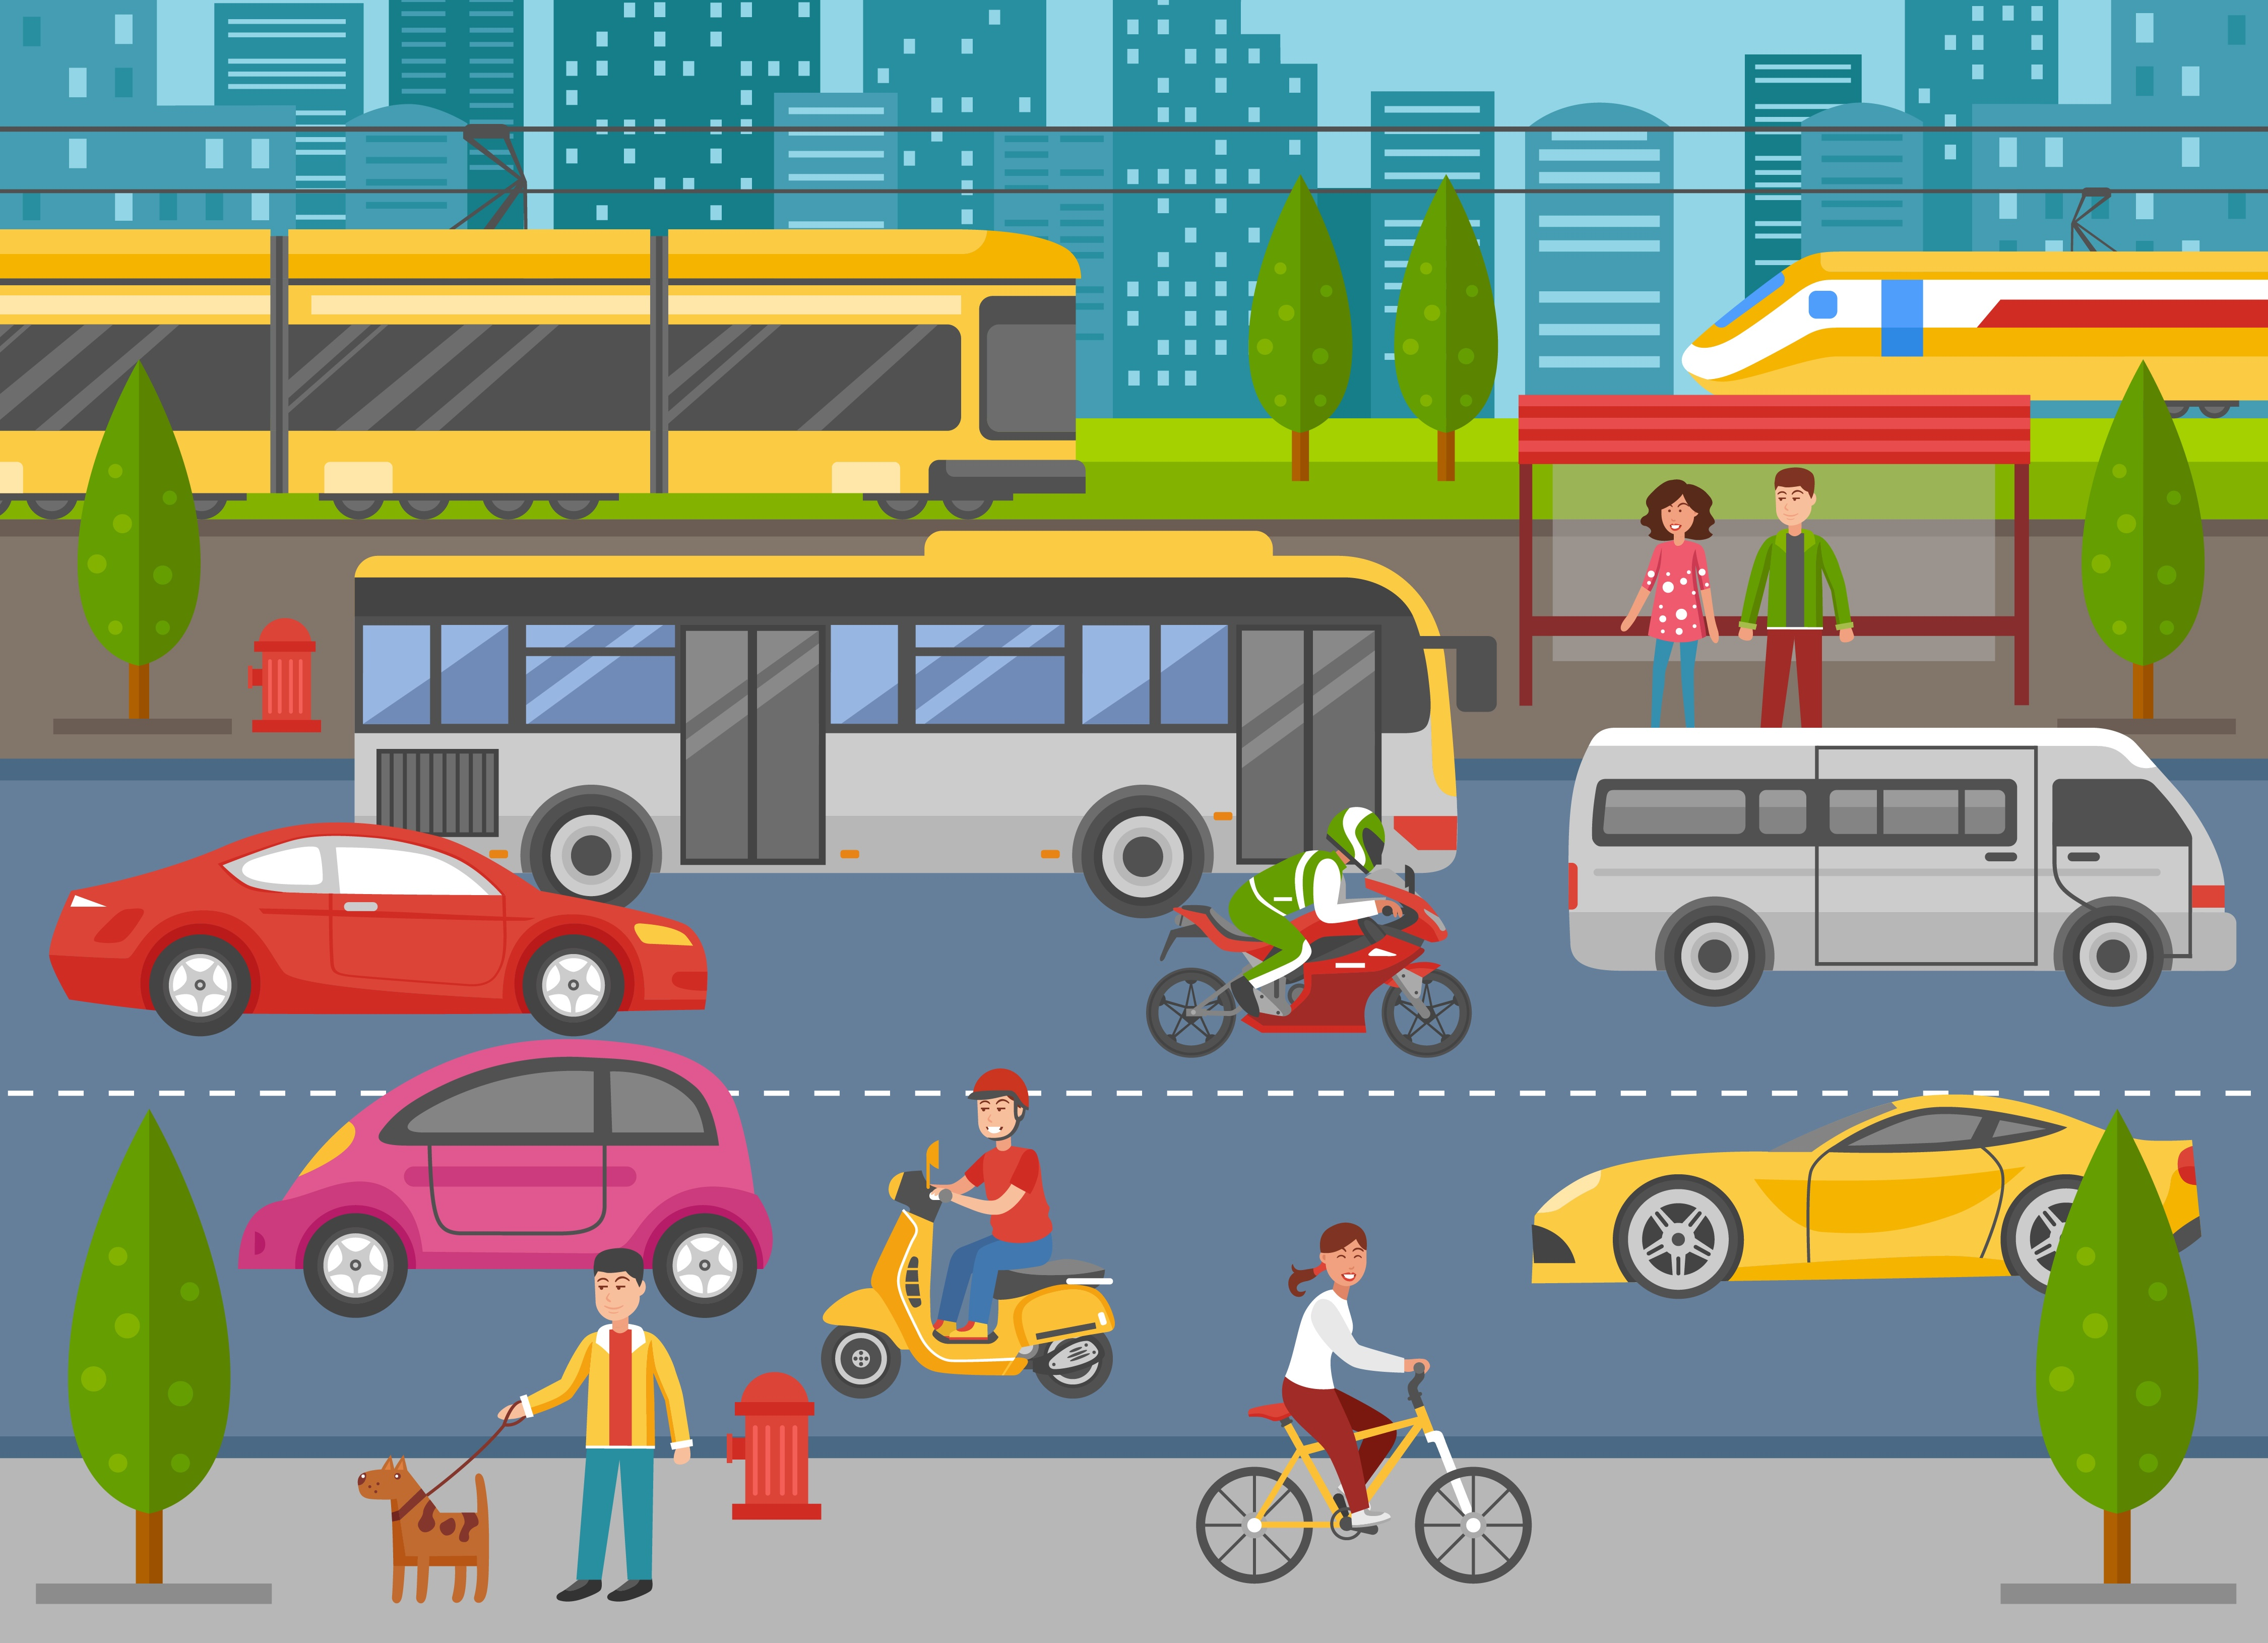 Smart City Dashboard: Improving Transportation and Mobility in